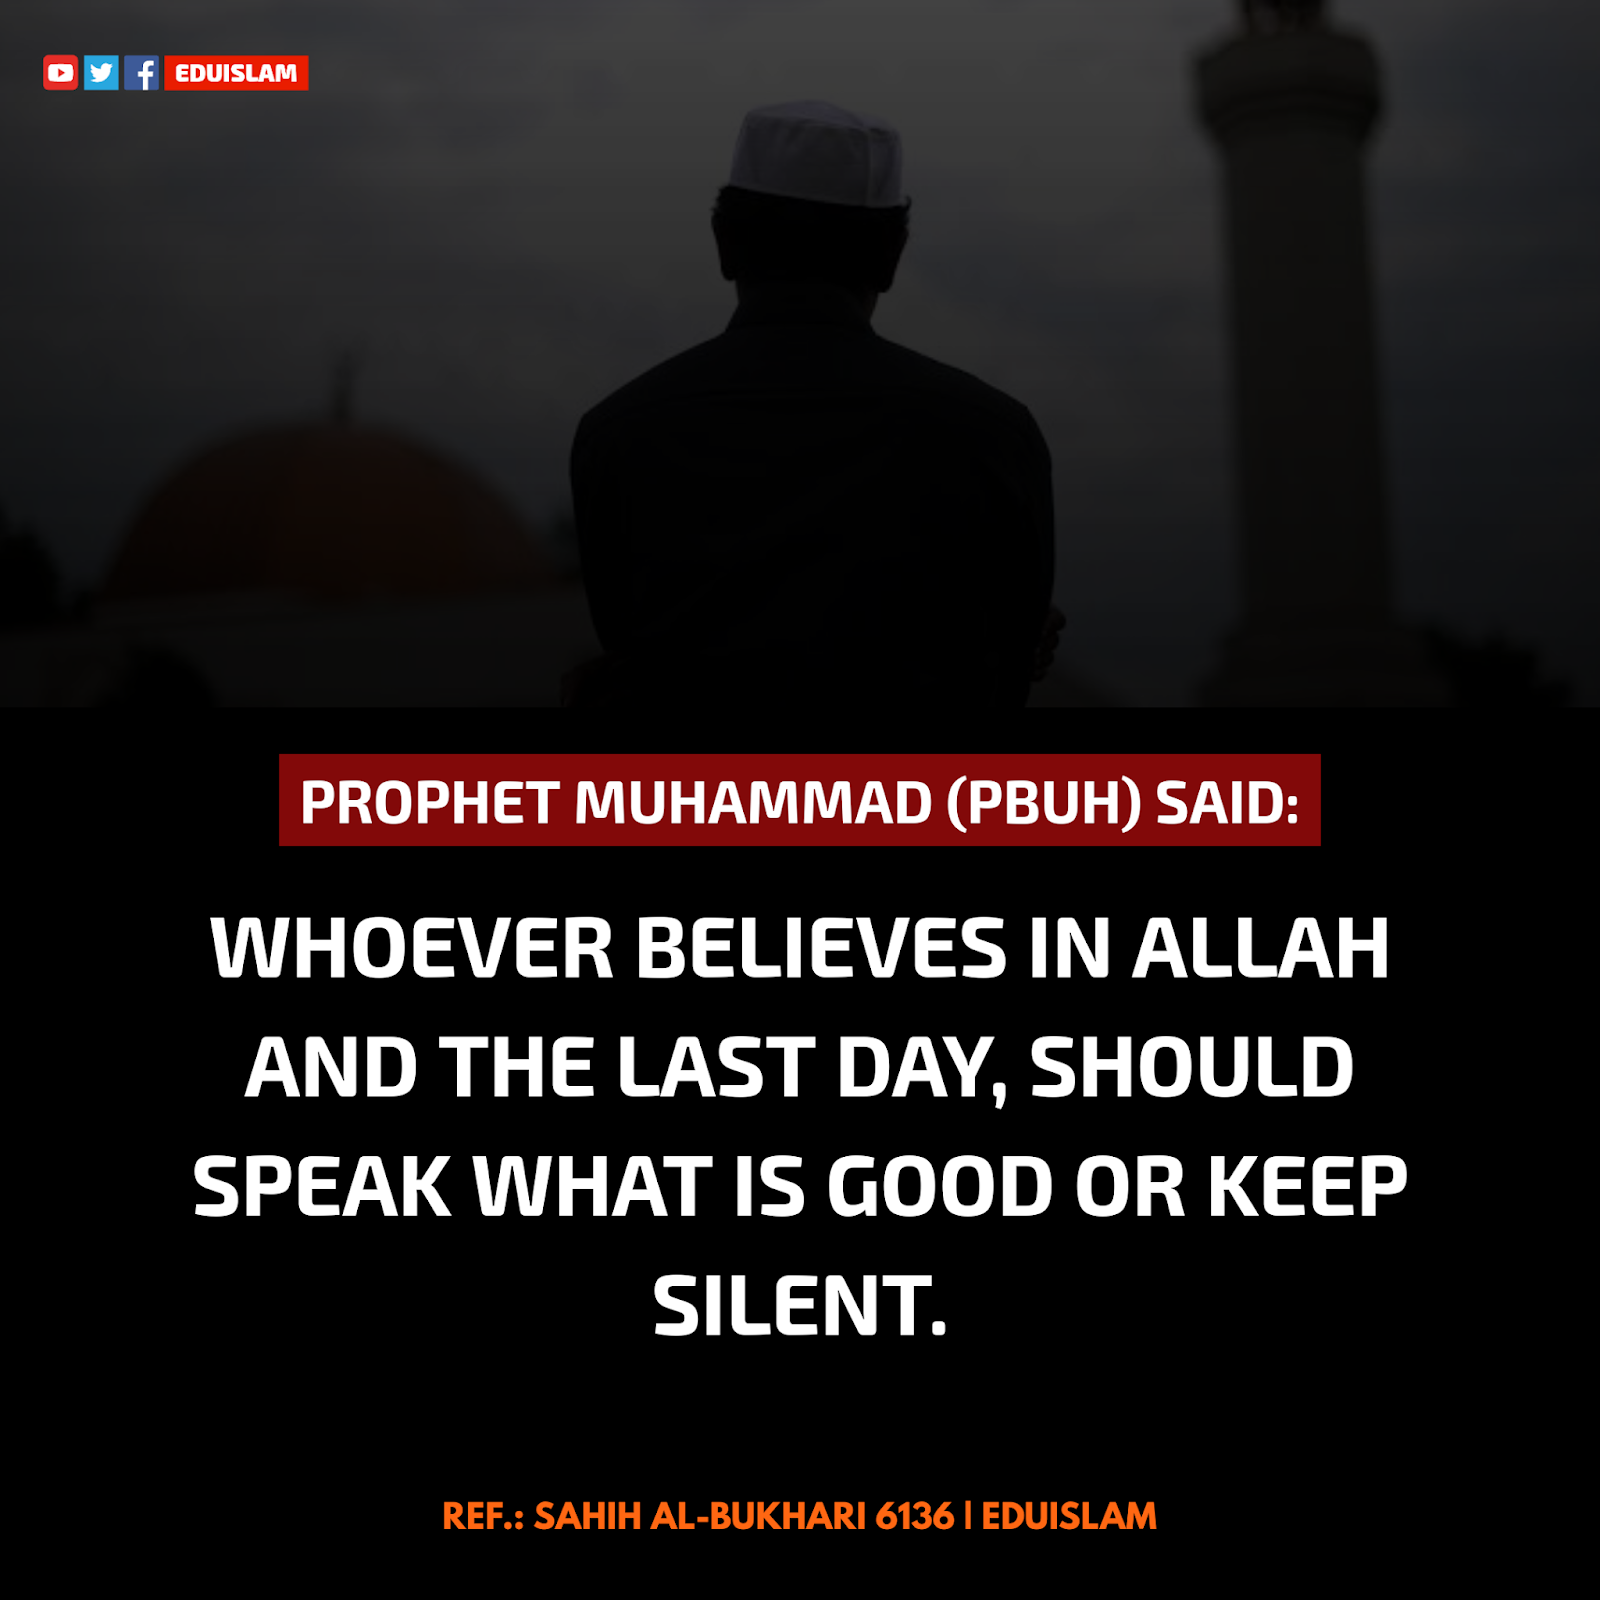 Whoever believes in Allah and the Last Day, should speak what is good or keep silent, Prophet Muhammad told to remain Silent, Quote Of Prophet Muhammad about Keeping Silent